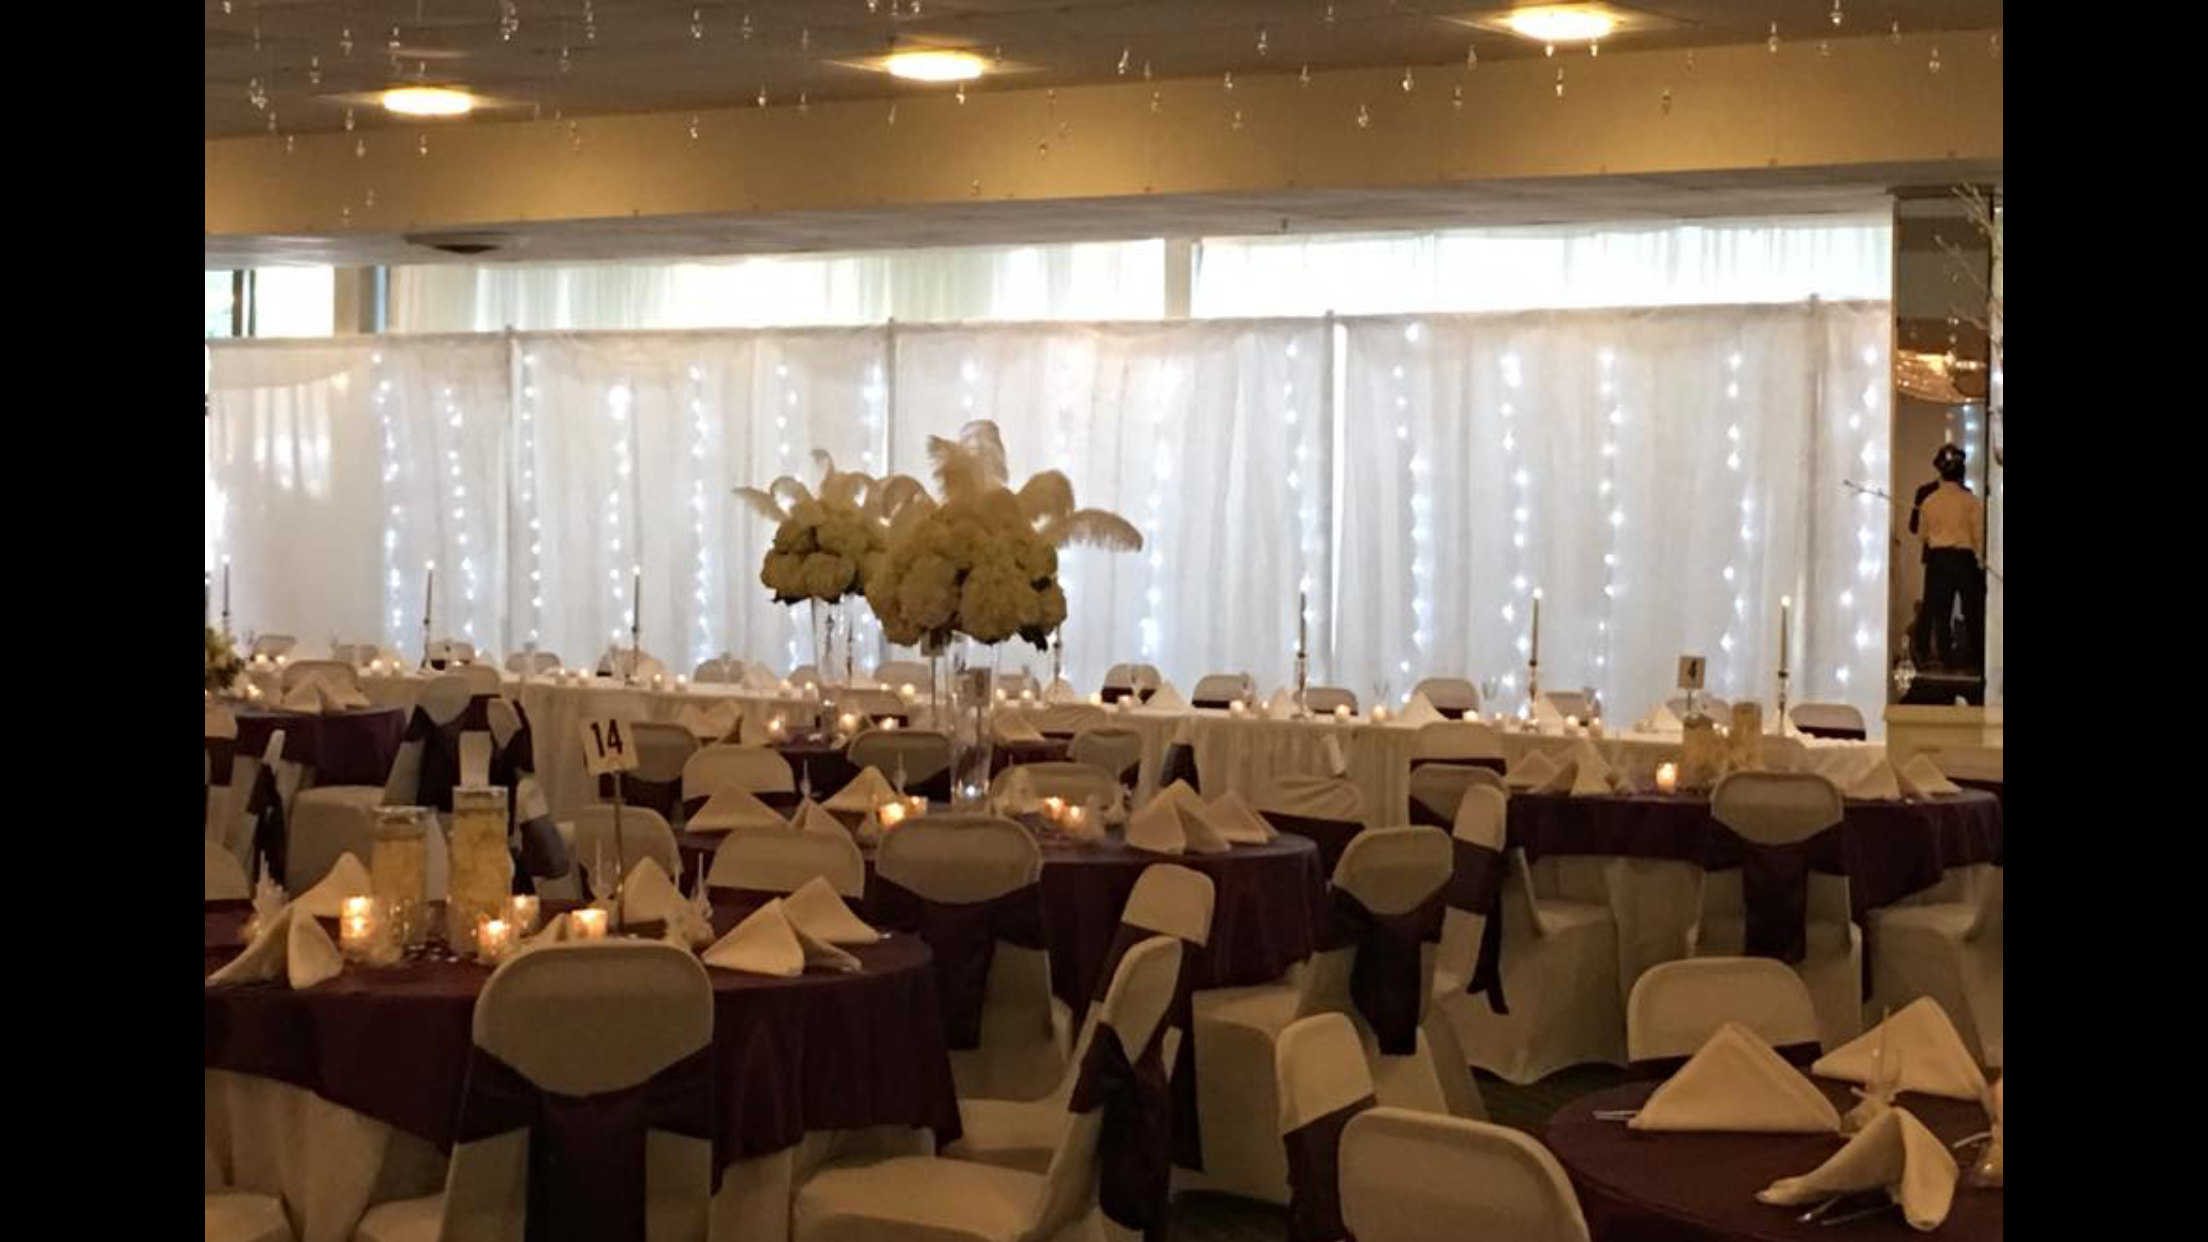 Bel-Air Banquets & Events in Belleville